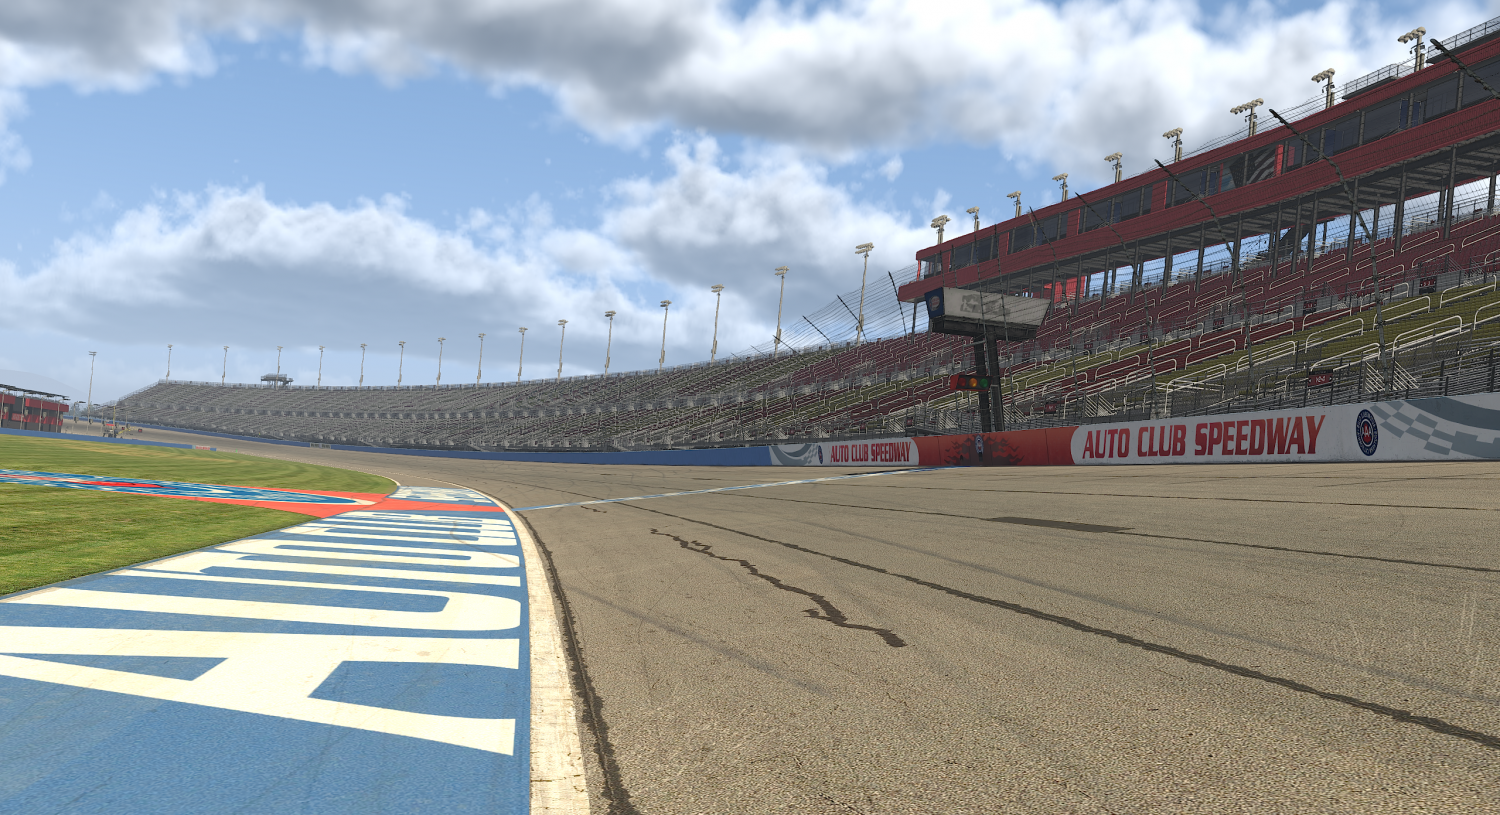 LIVE NOW: Coca-Cola iRacing Series from Auto Club